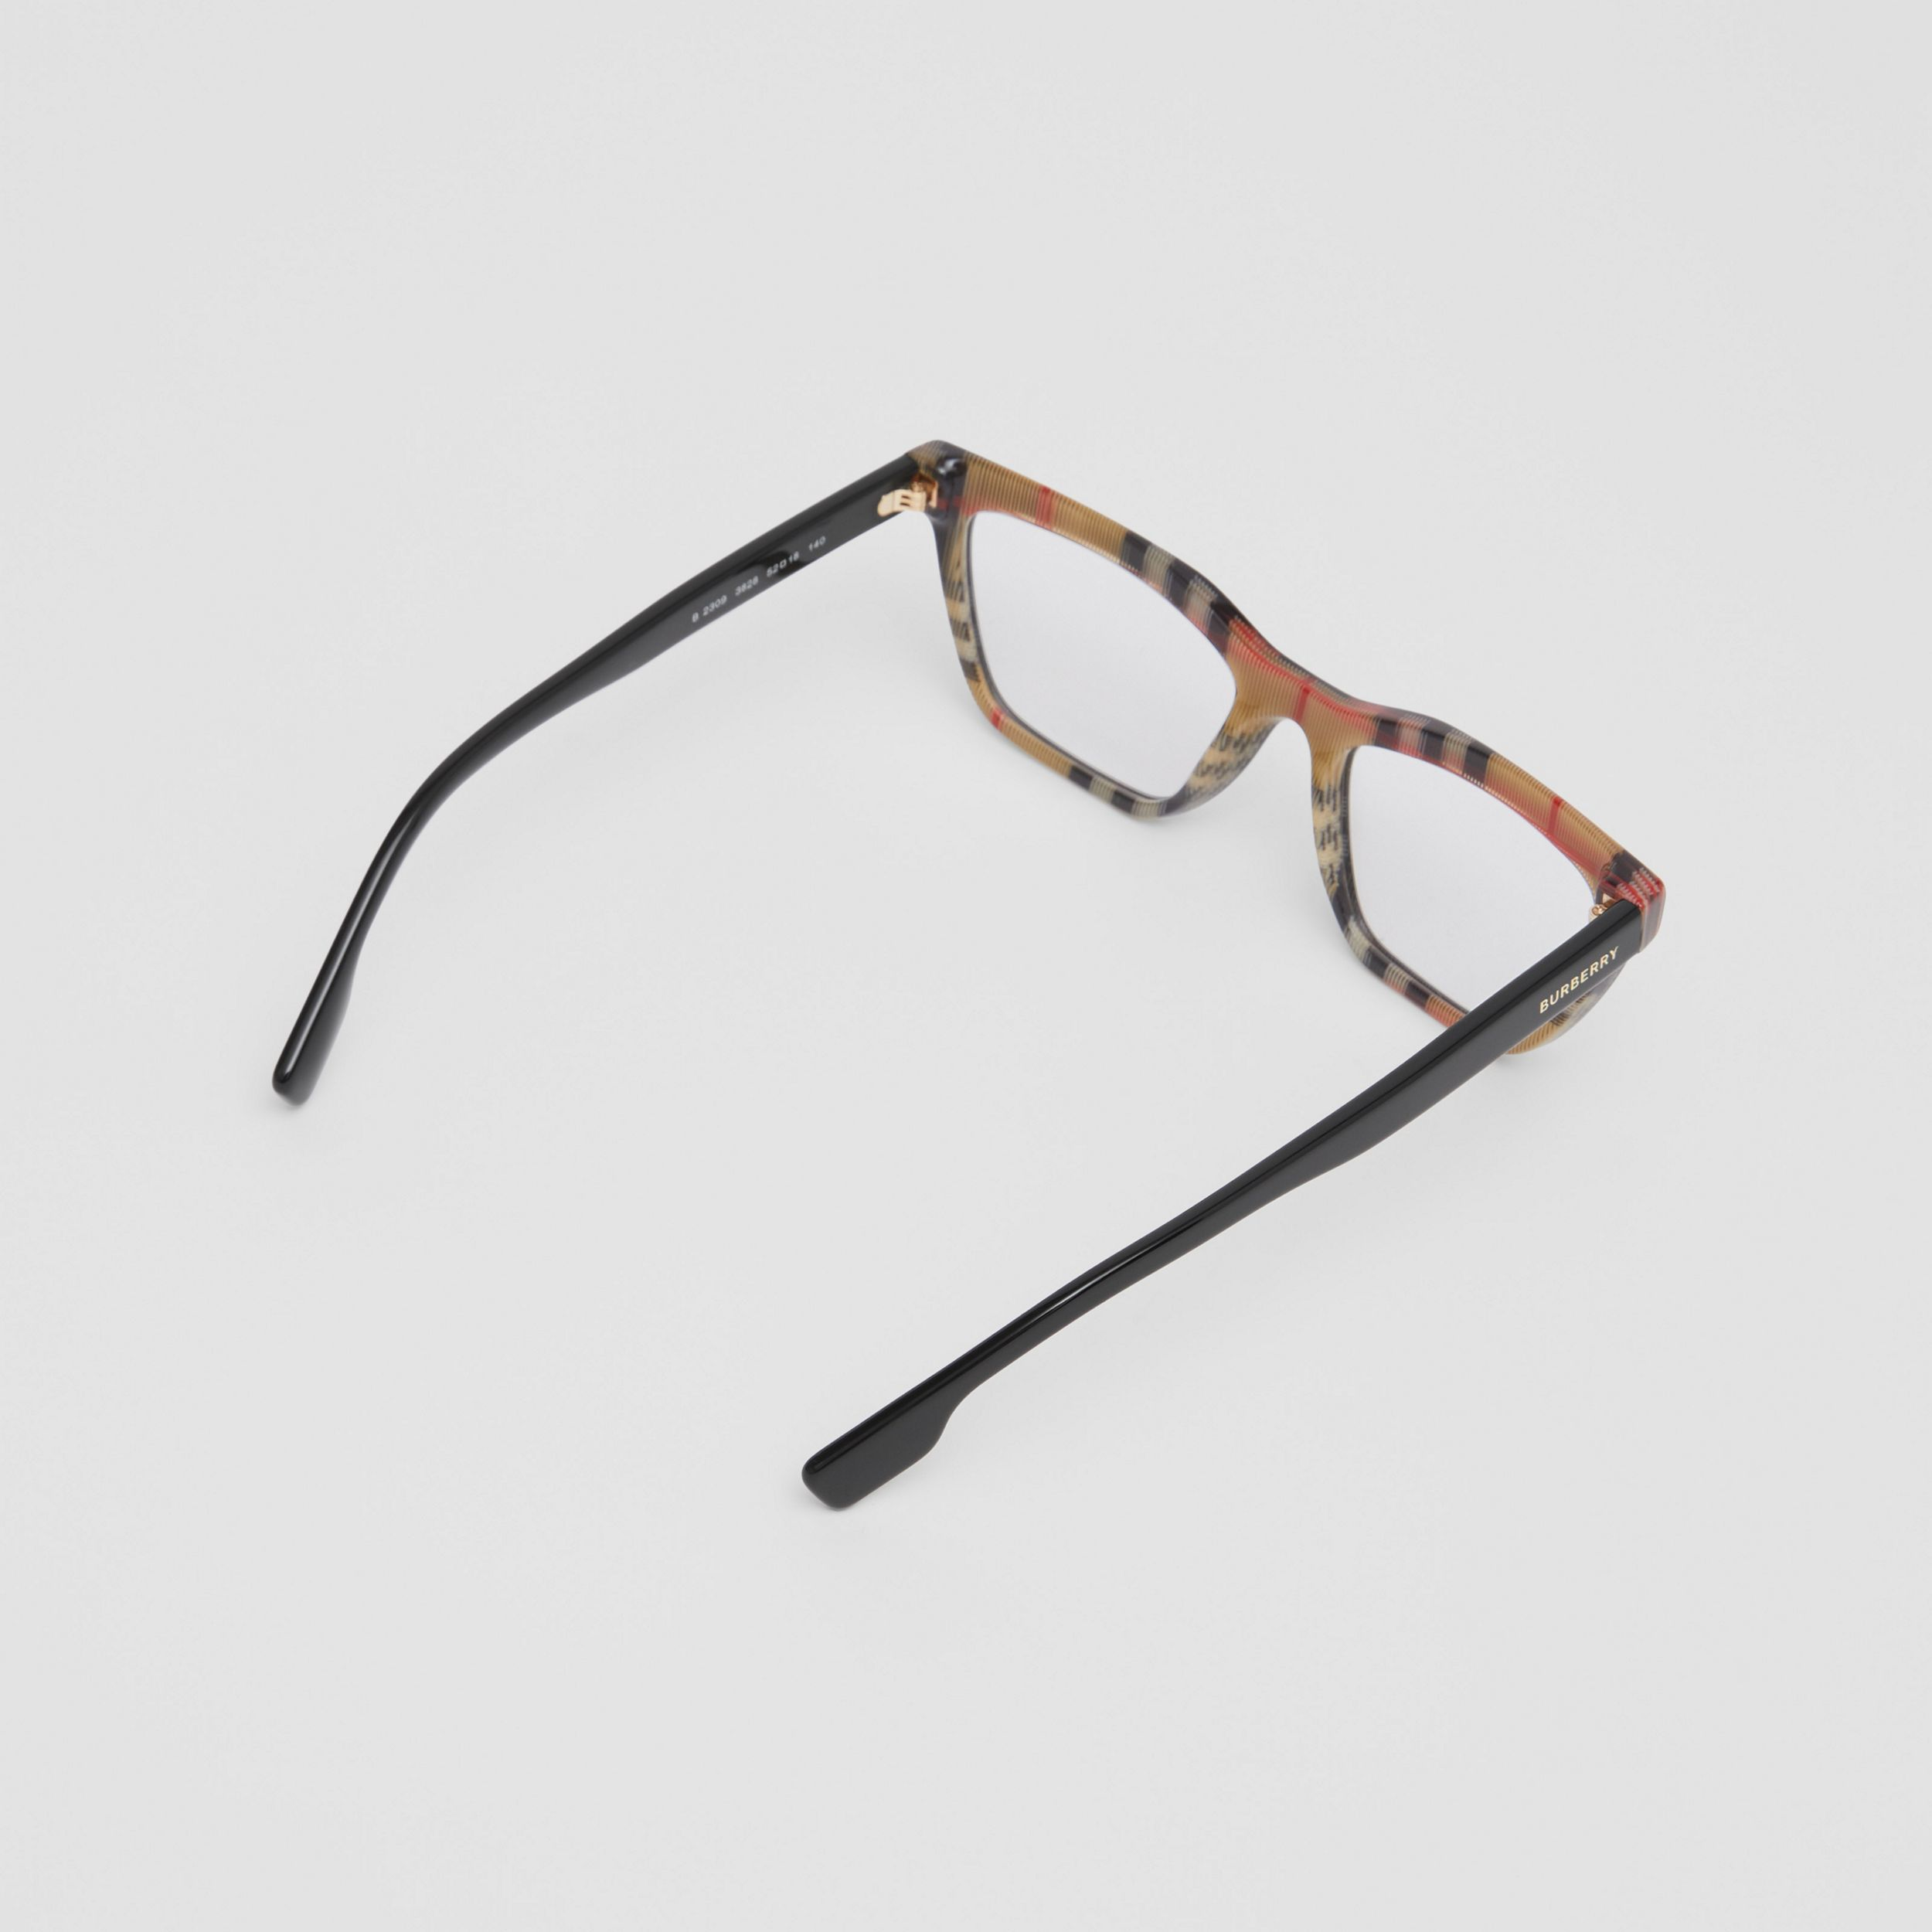 Rectangular Optical Frames in Black/beige - Women | Burberry United States - 4